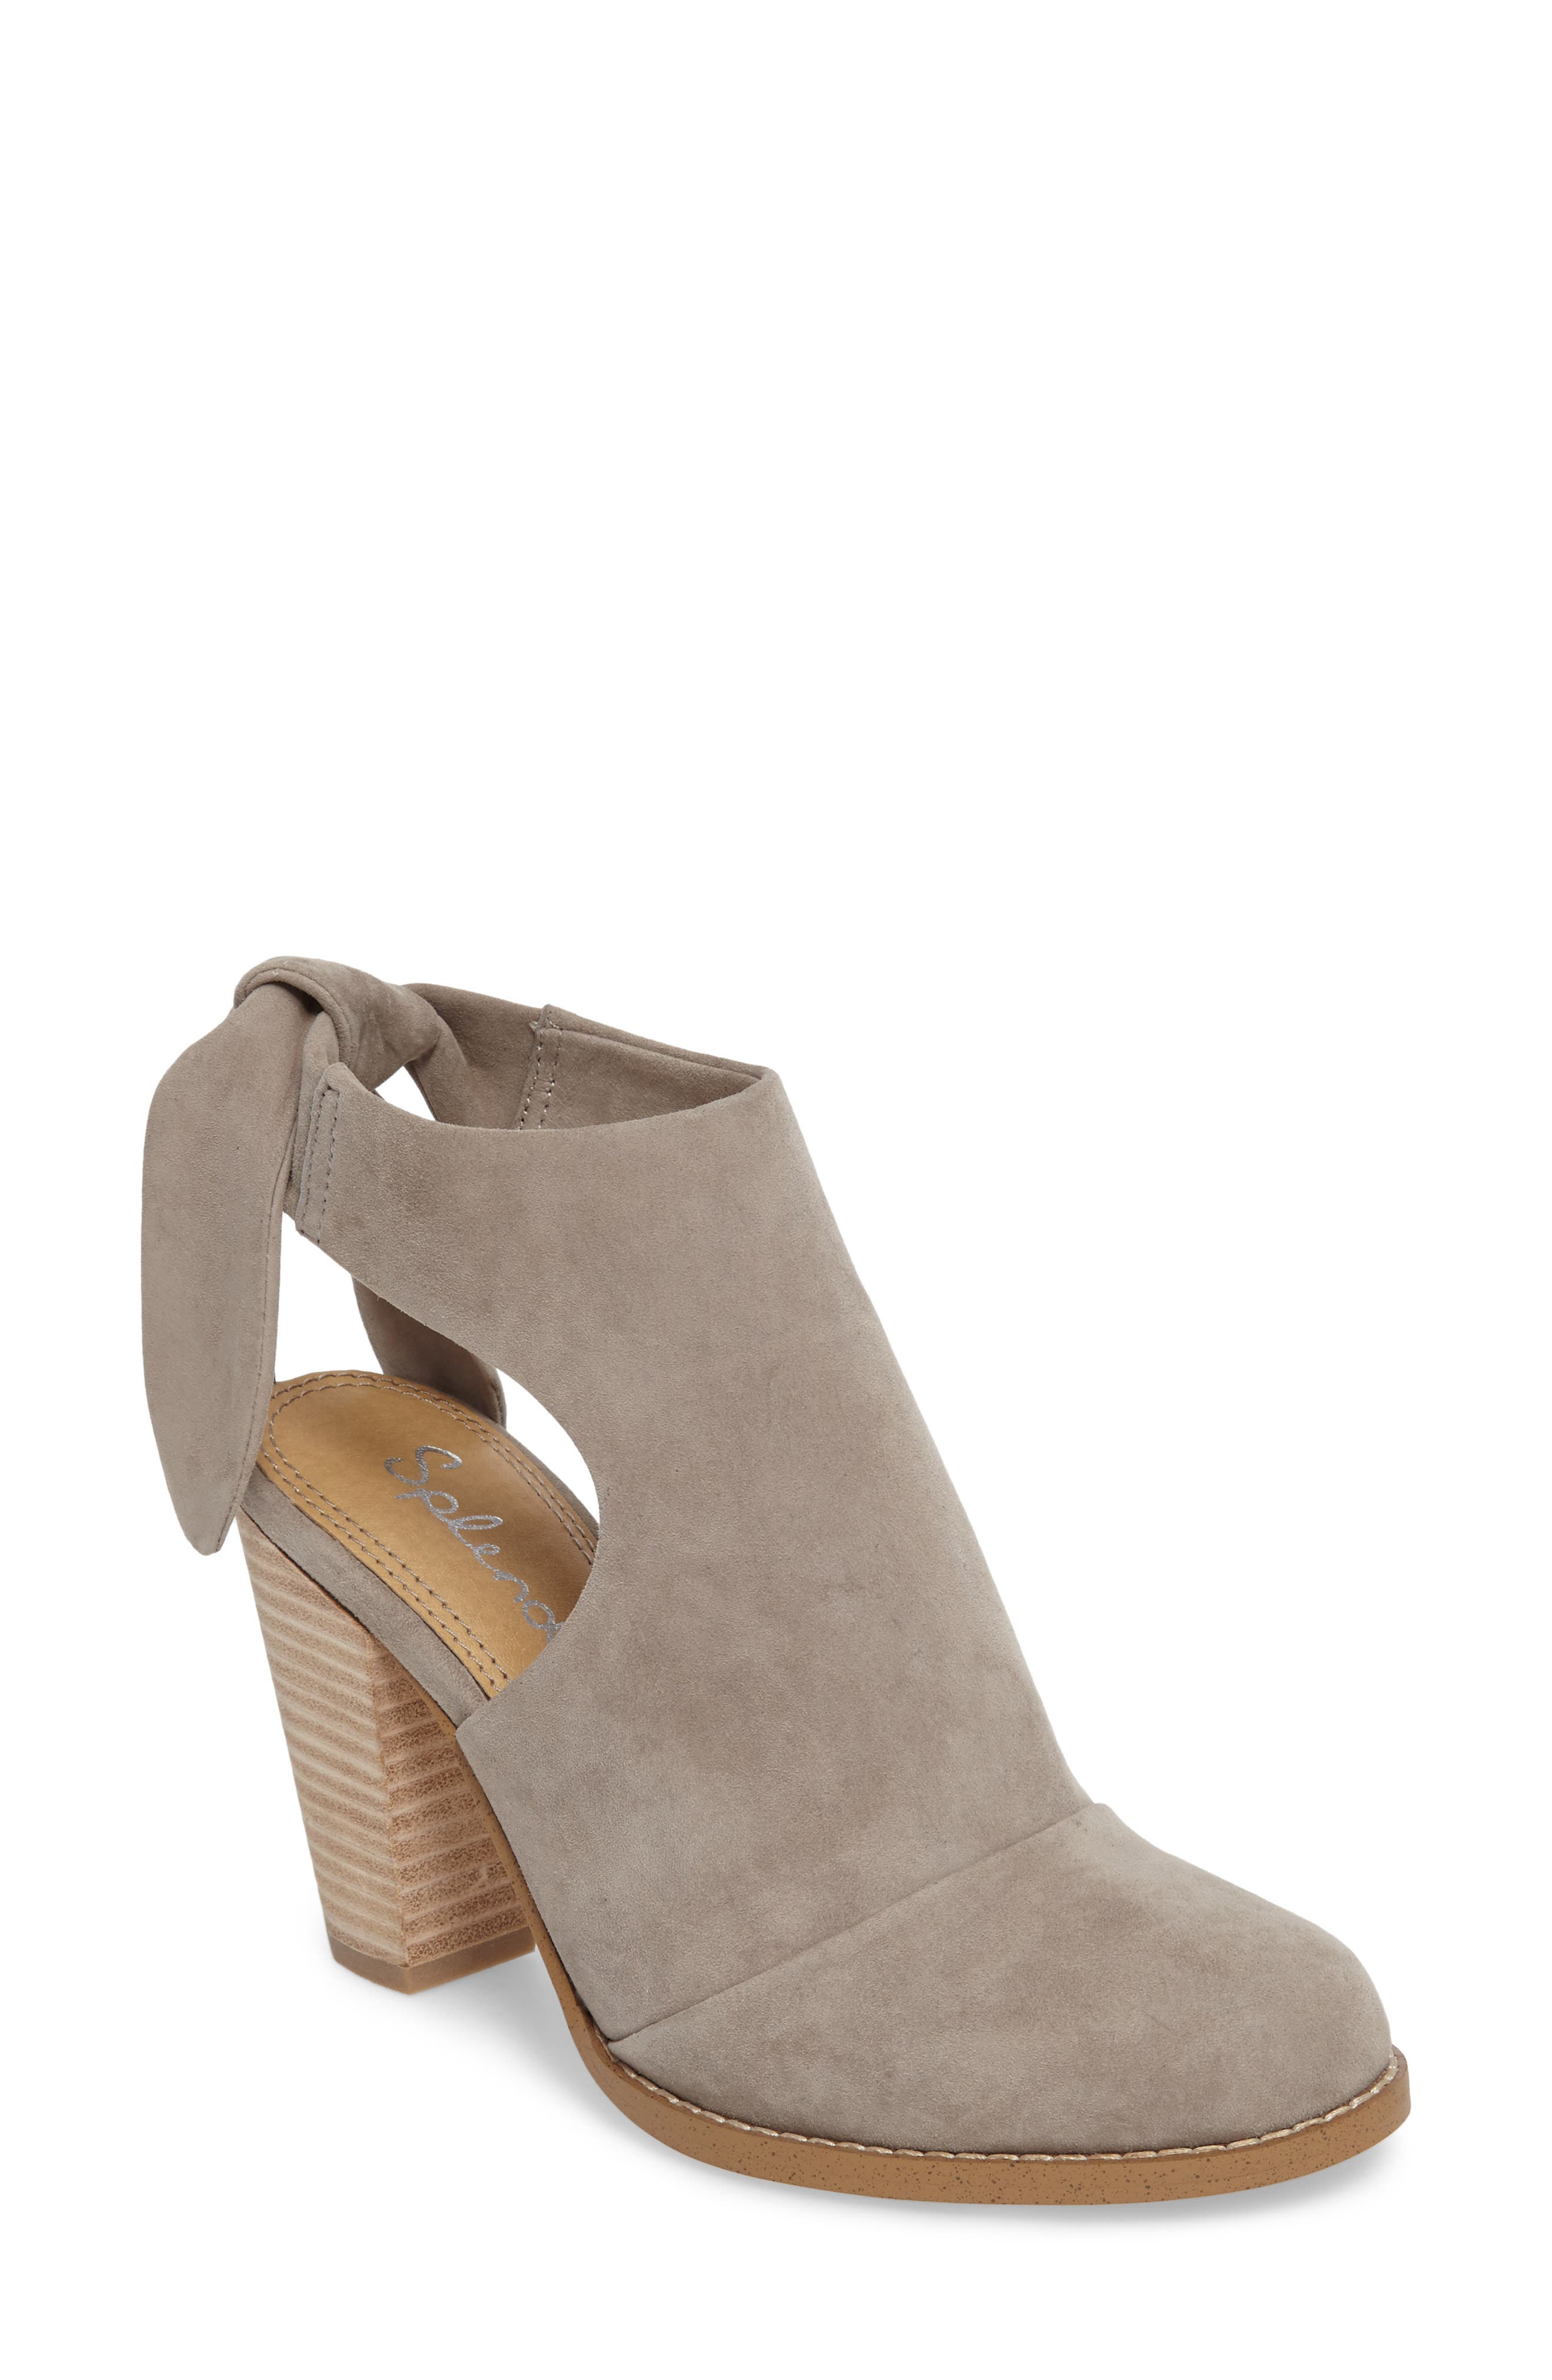 Danae Stacked Heel Bootie,                             Main thumbnail 1, color,                             Pearl Grey Suede